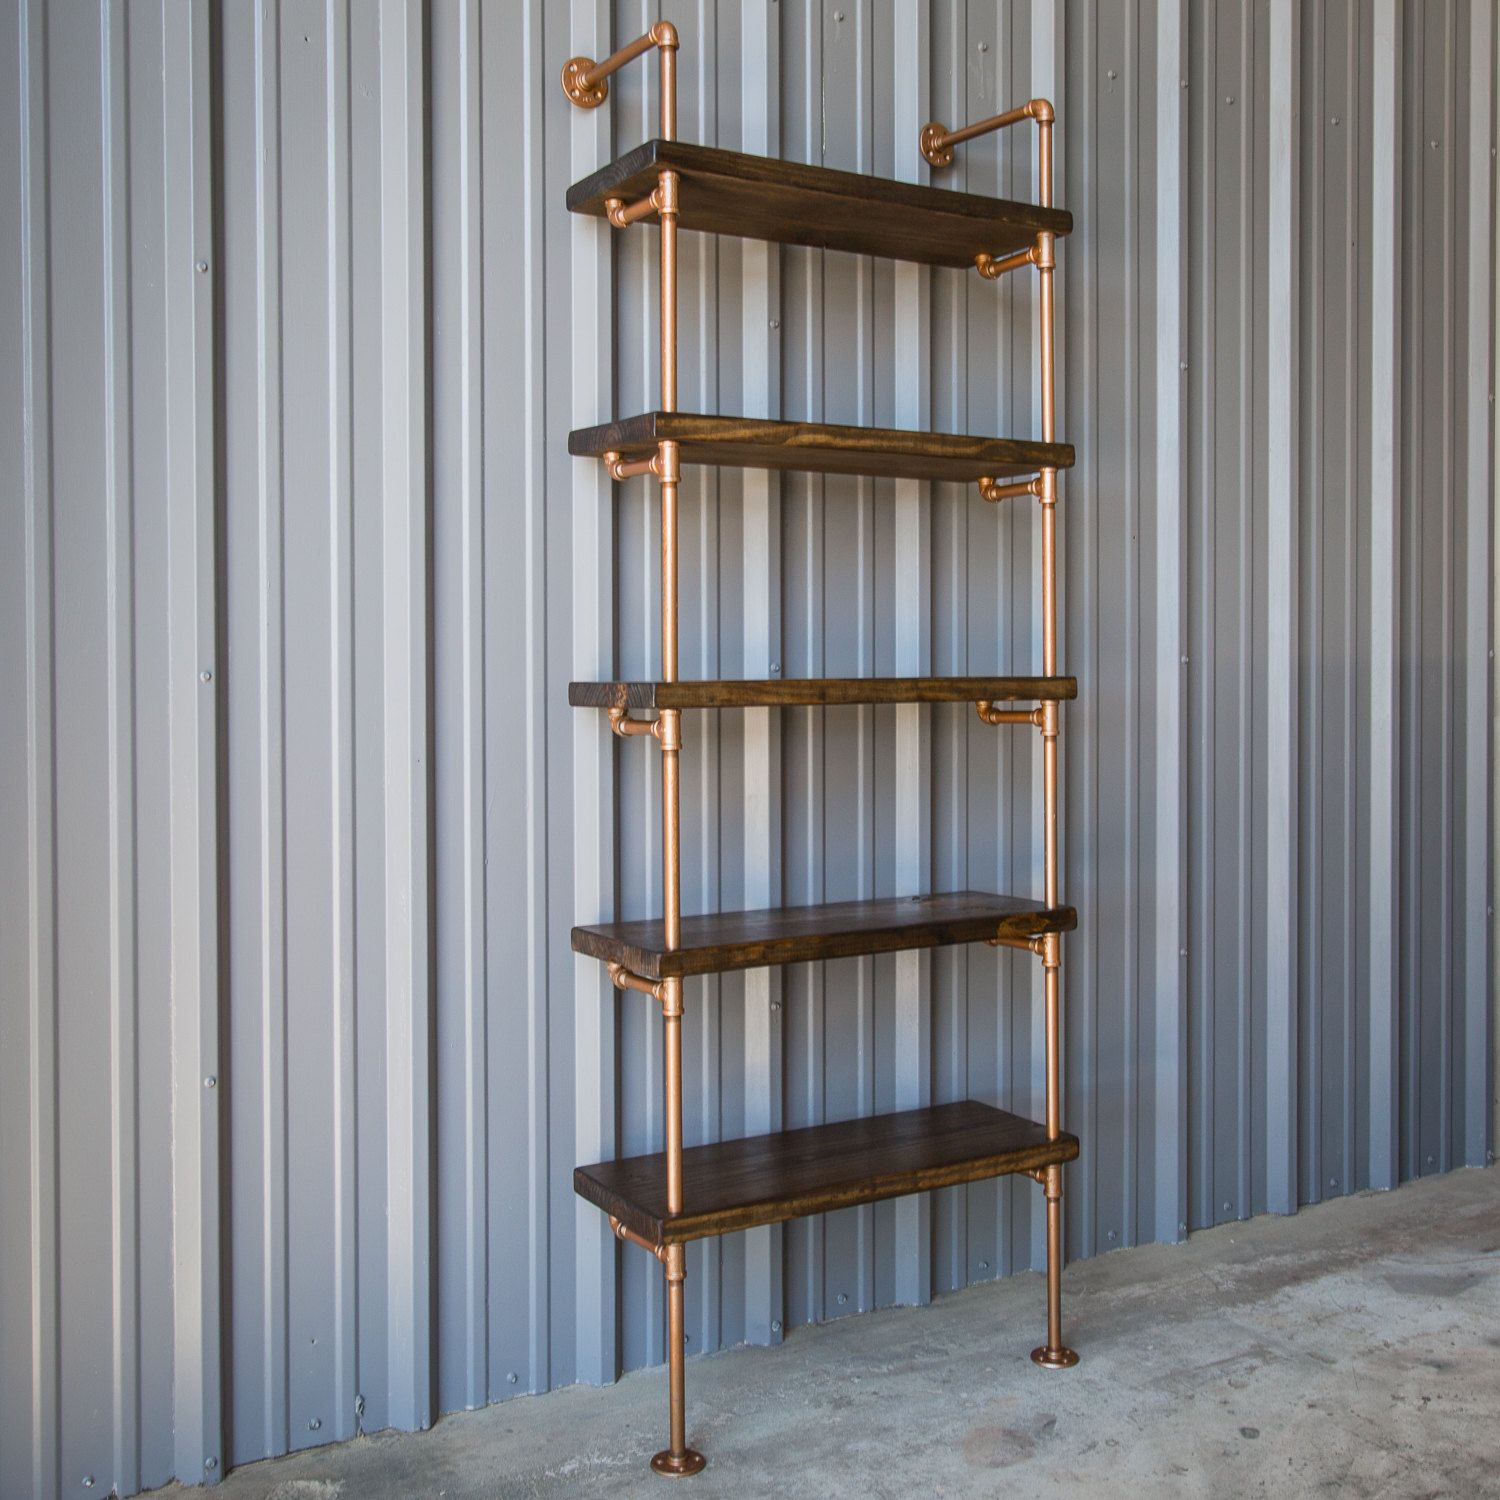 Pvc Pipe Bookshelf Industrial Shelving Can Be Chic And With The Copper Finish Work